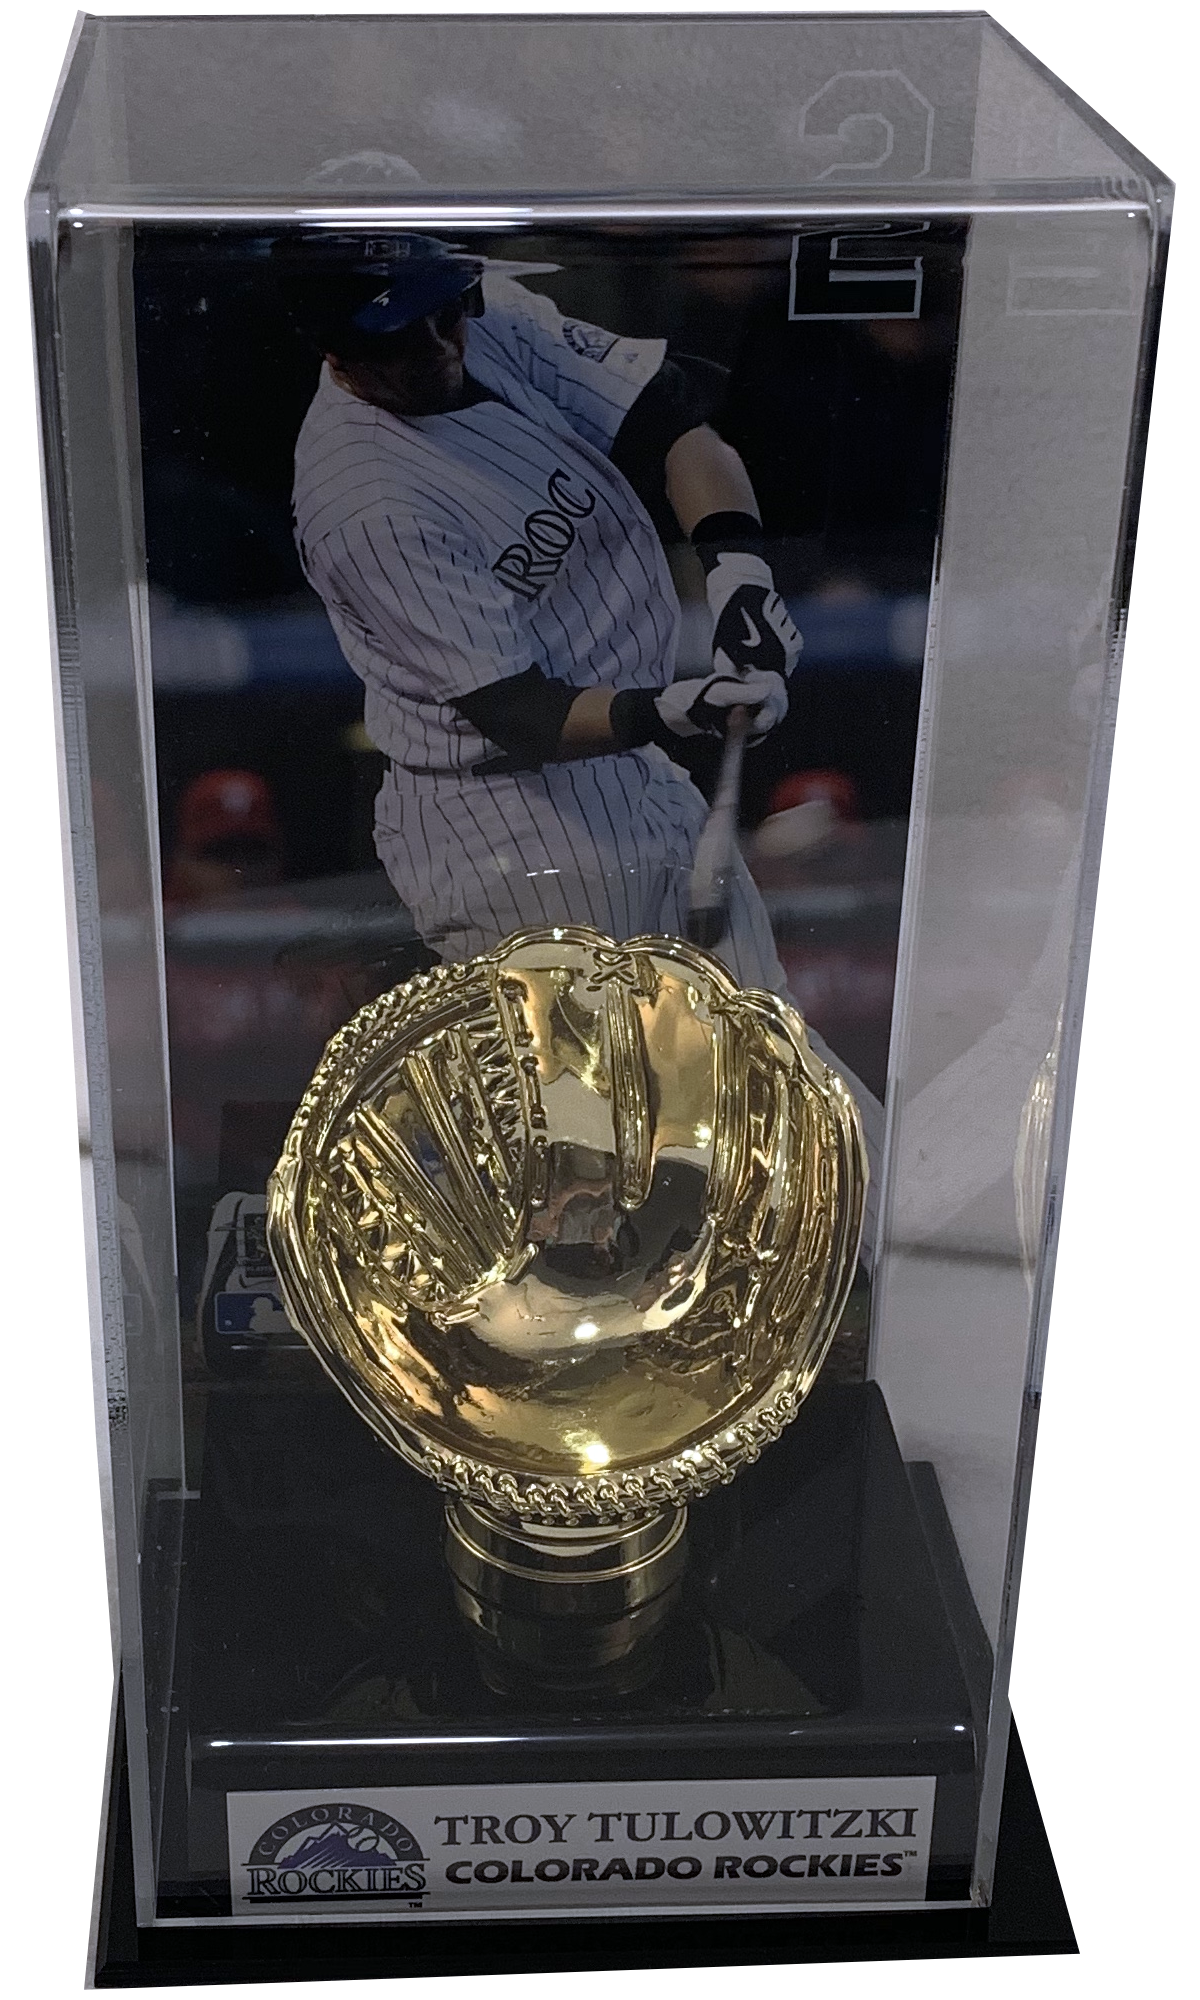 Troy Tulowitzki Deluxe Baseball Display Case (Rockies) - Latitude Sports Marketing